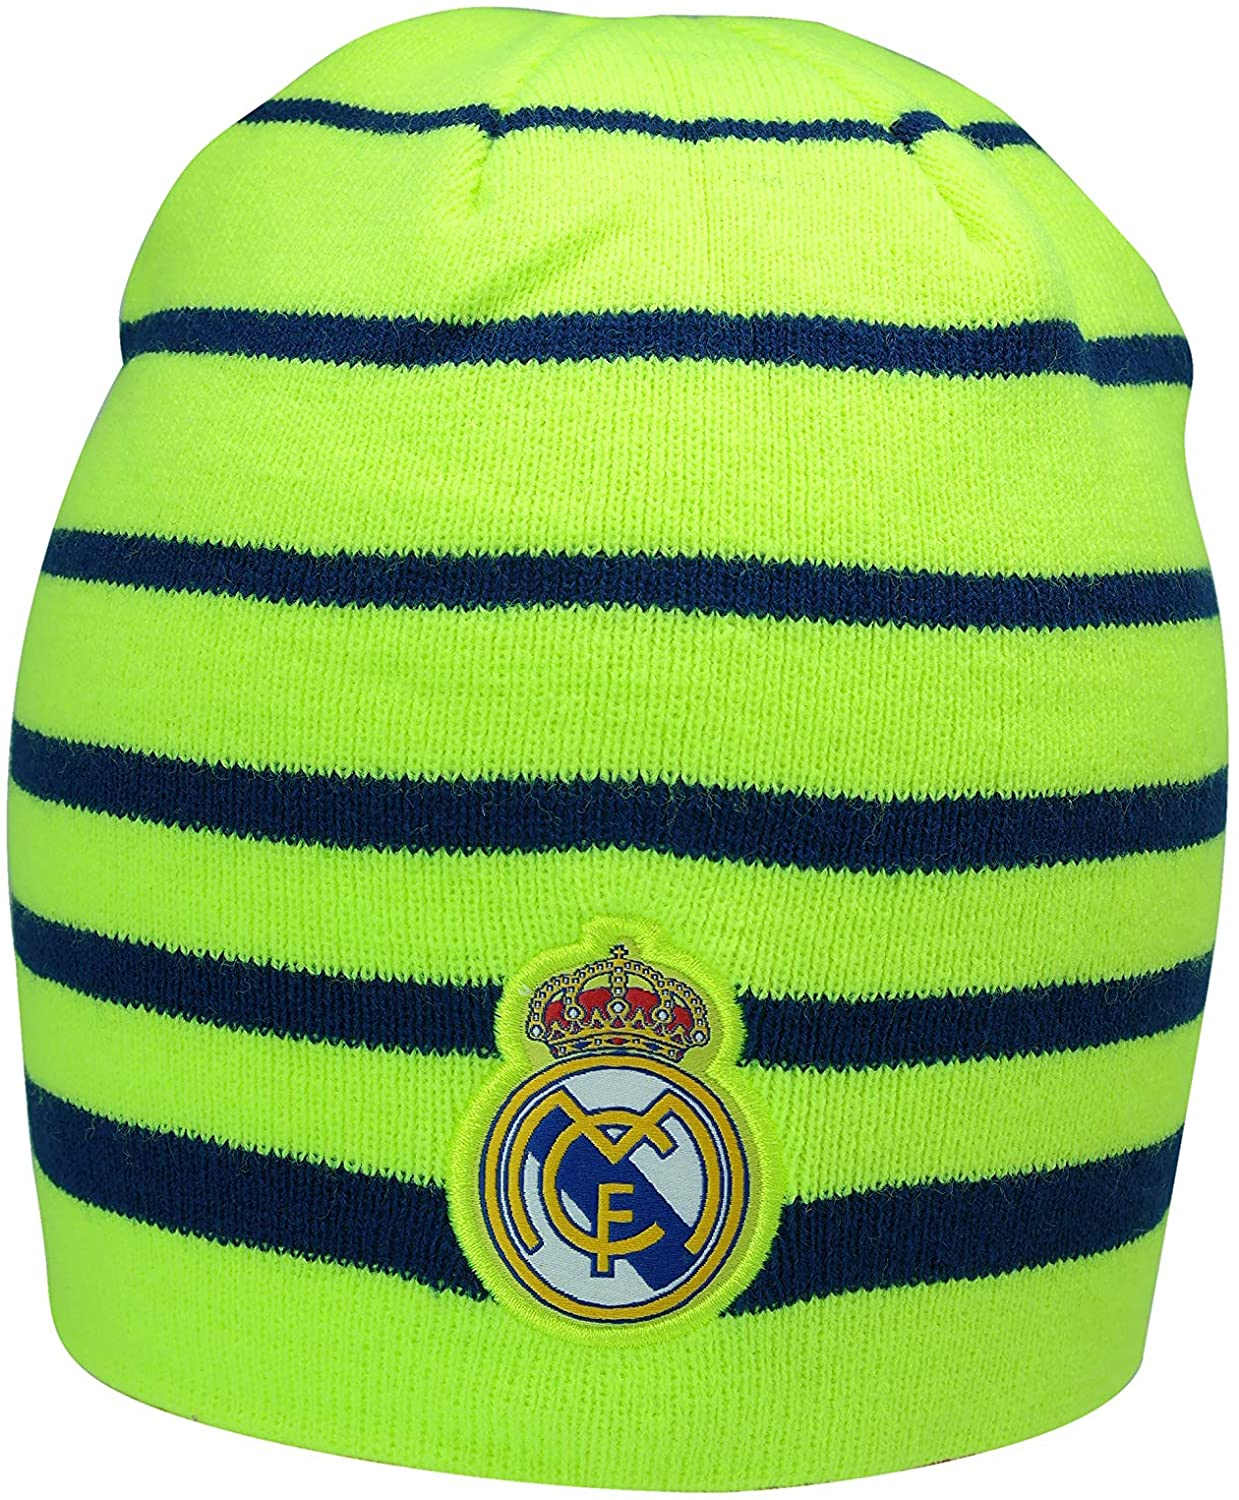 RHINOXGROUP Real Madrid Officially Licensed Soccer Beanie - 01-8